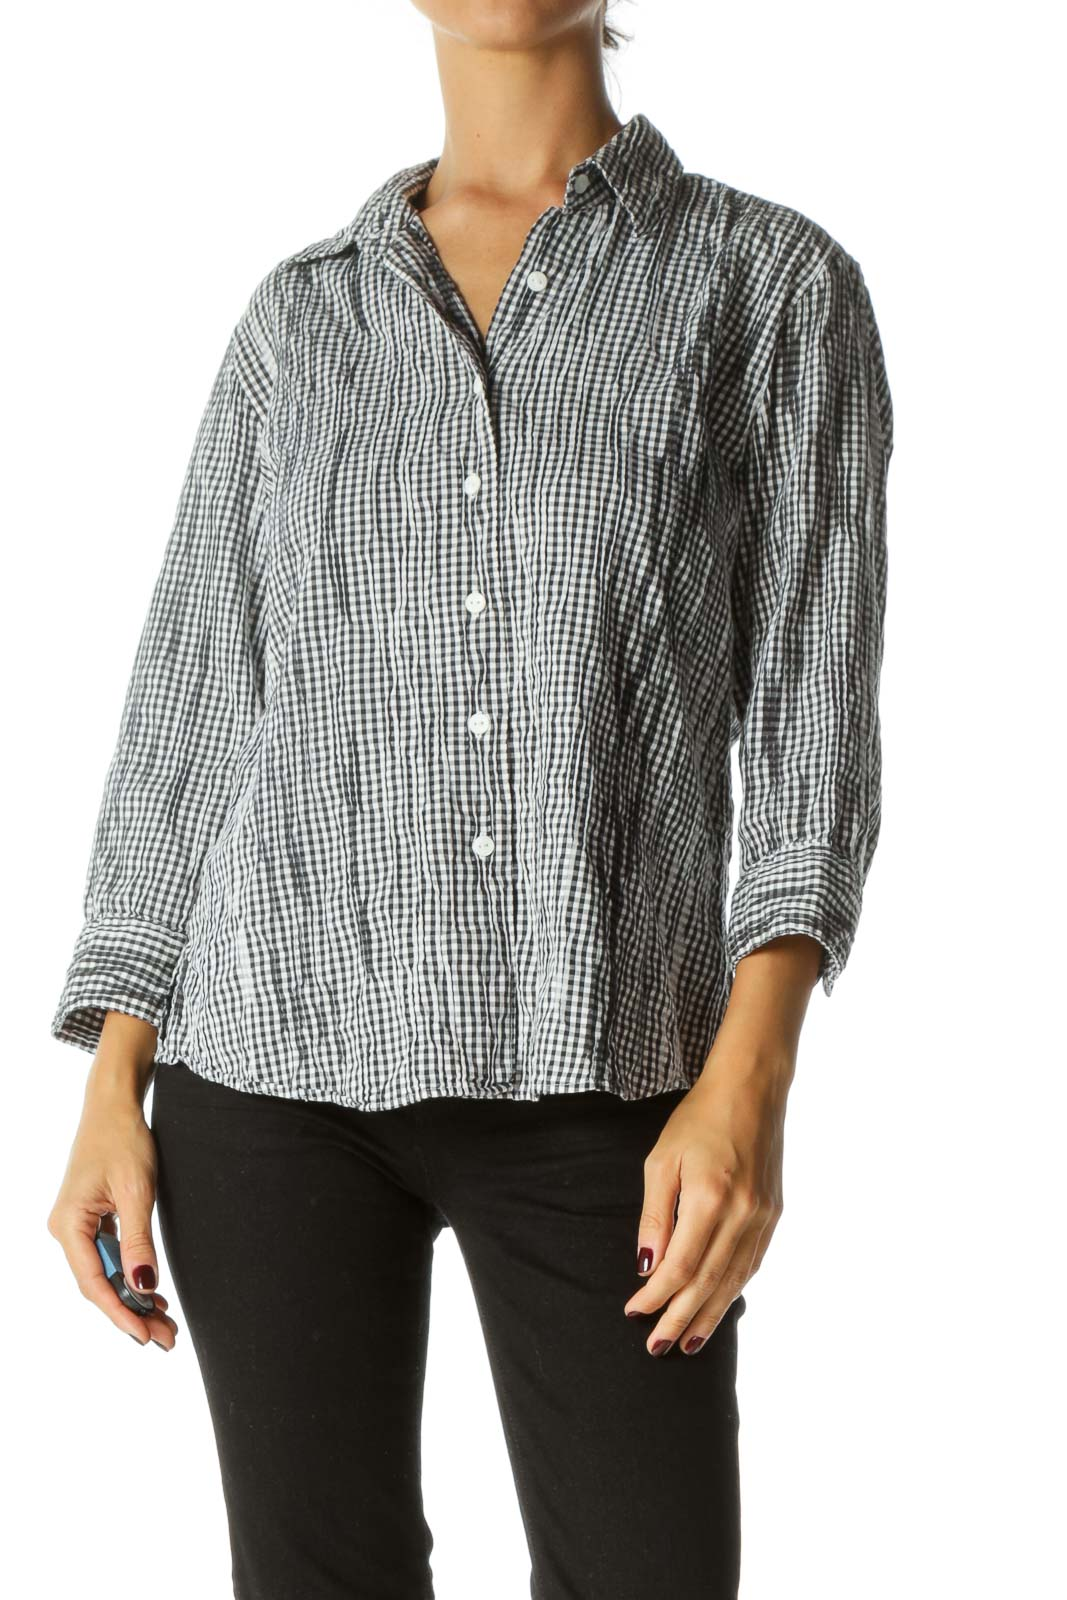 Black White Textured Checkered Print Buttoned Shirt Front